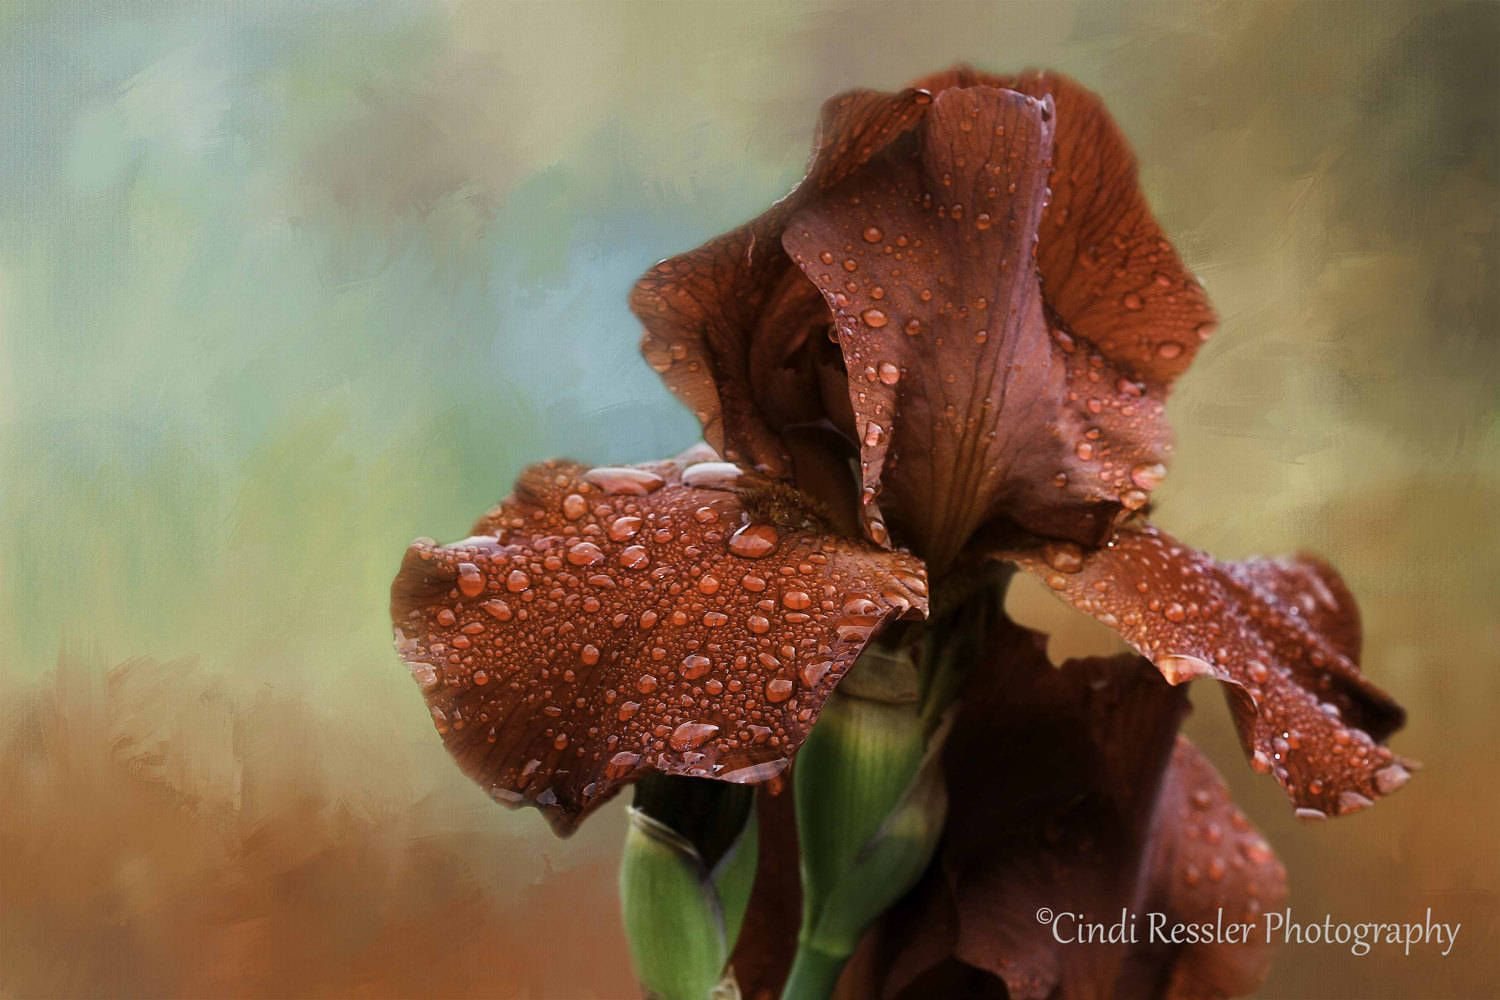 Iris, Bearded Iris, Flower Photography, Floral Photography, Photography, Garden Photography, Fine Art Photography, Botanical, Floral Art is part of garden Photography Art - CindiRessler ~~~~~~~~~~~~~~~~~~~~~~~~~~ Copyright 2018 Cindi Ressler Photography  All rights reserved